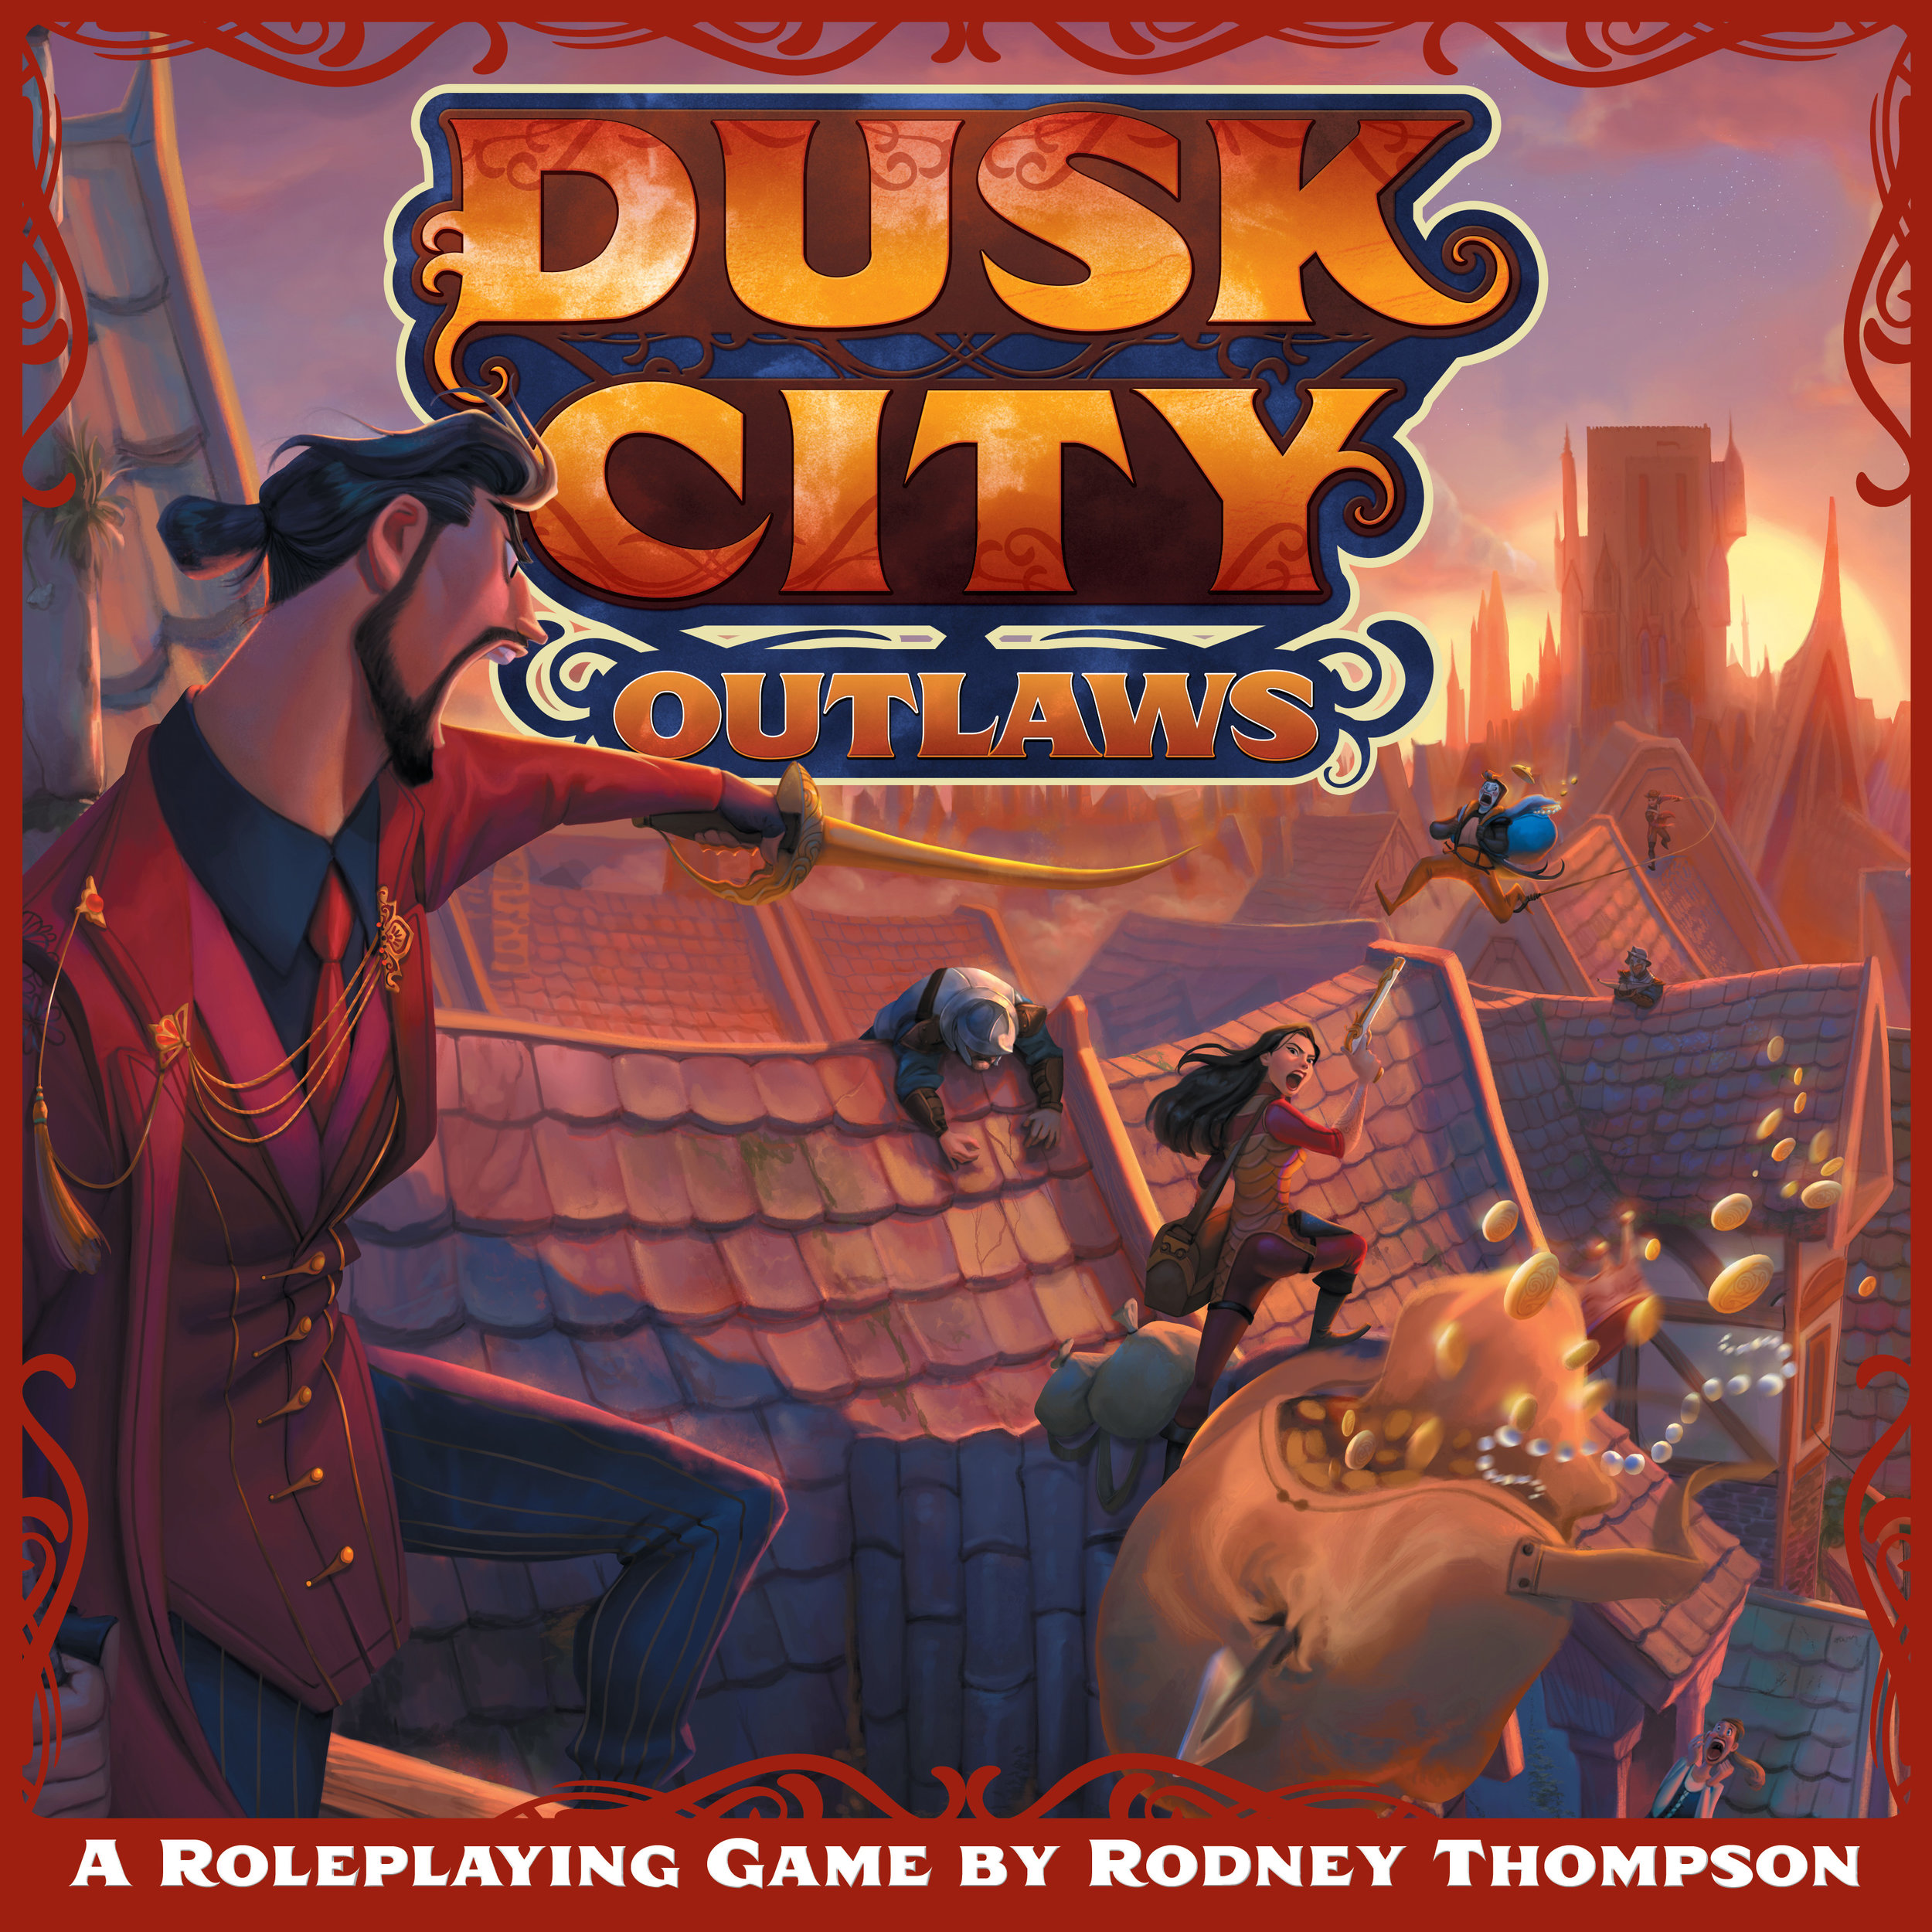 Dusk-City-Outlaws---Box-2017-07-17-FRONT.jpg